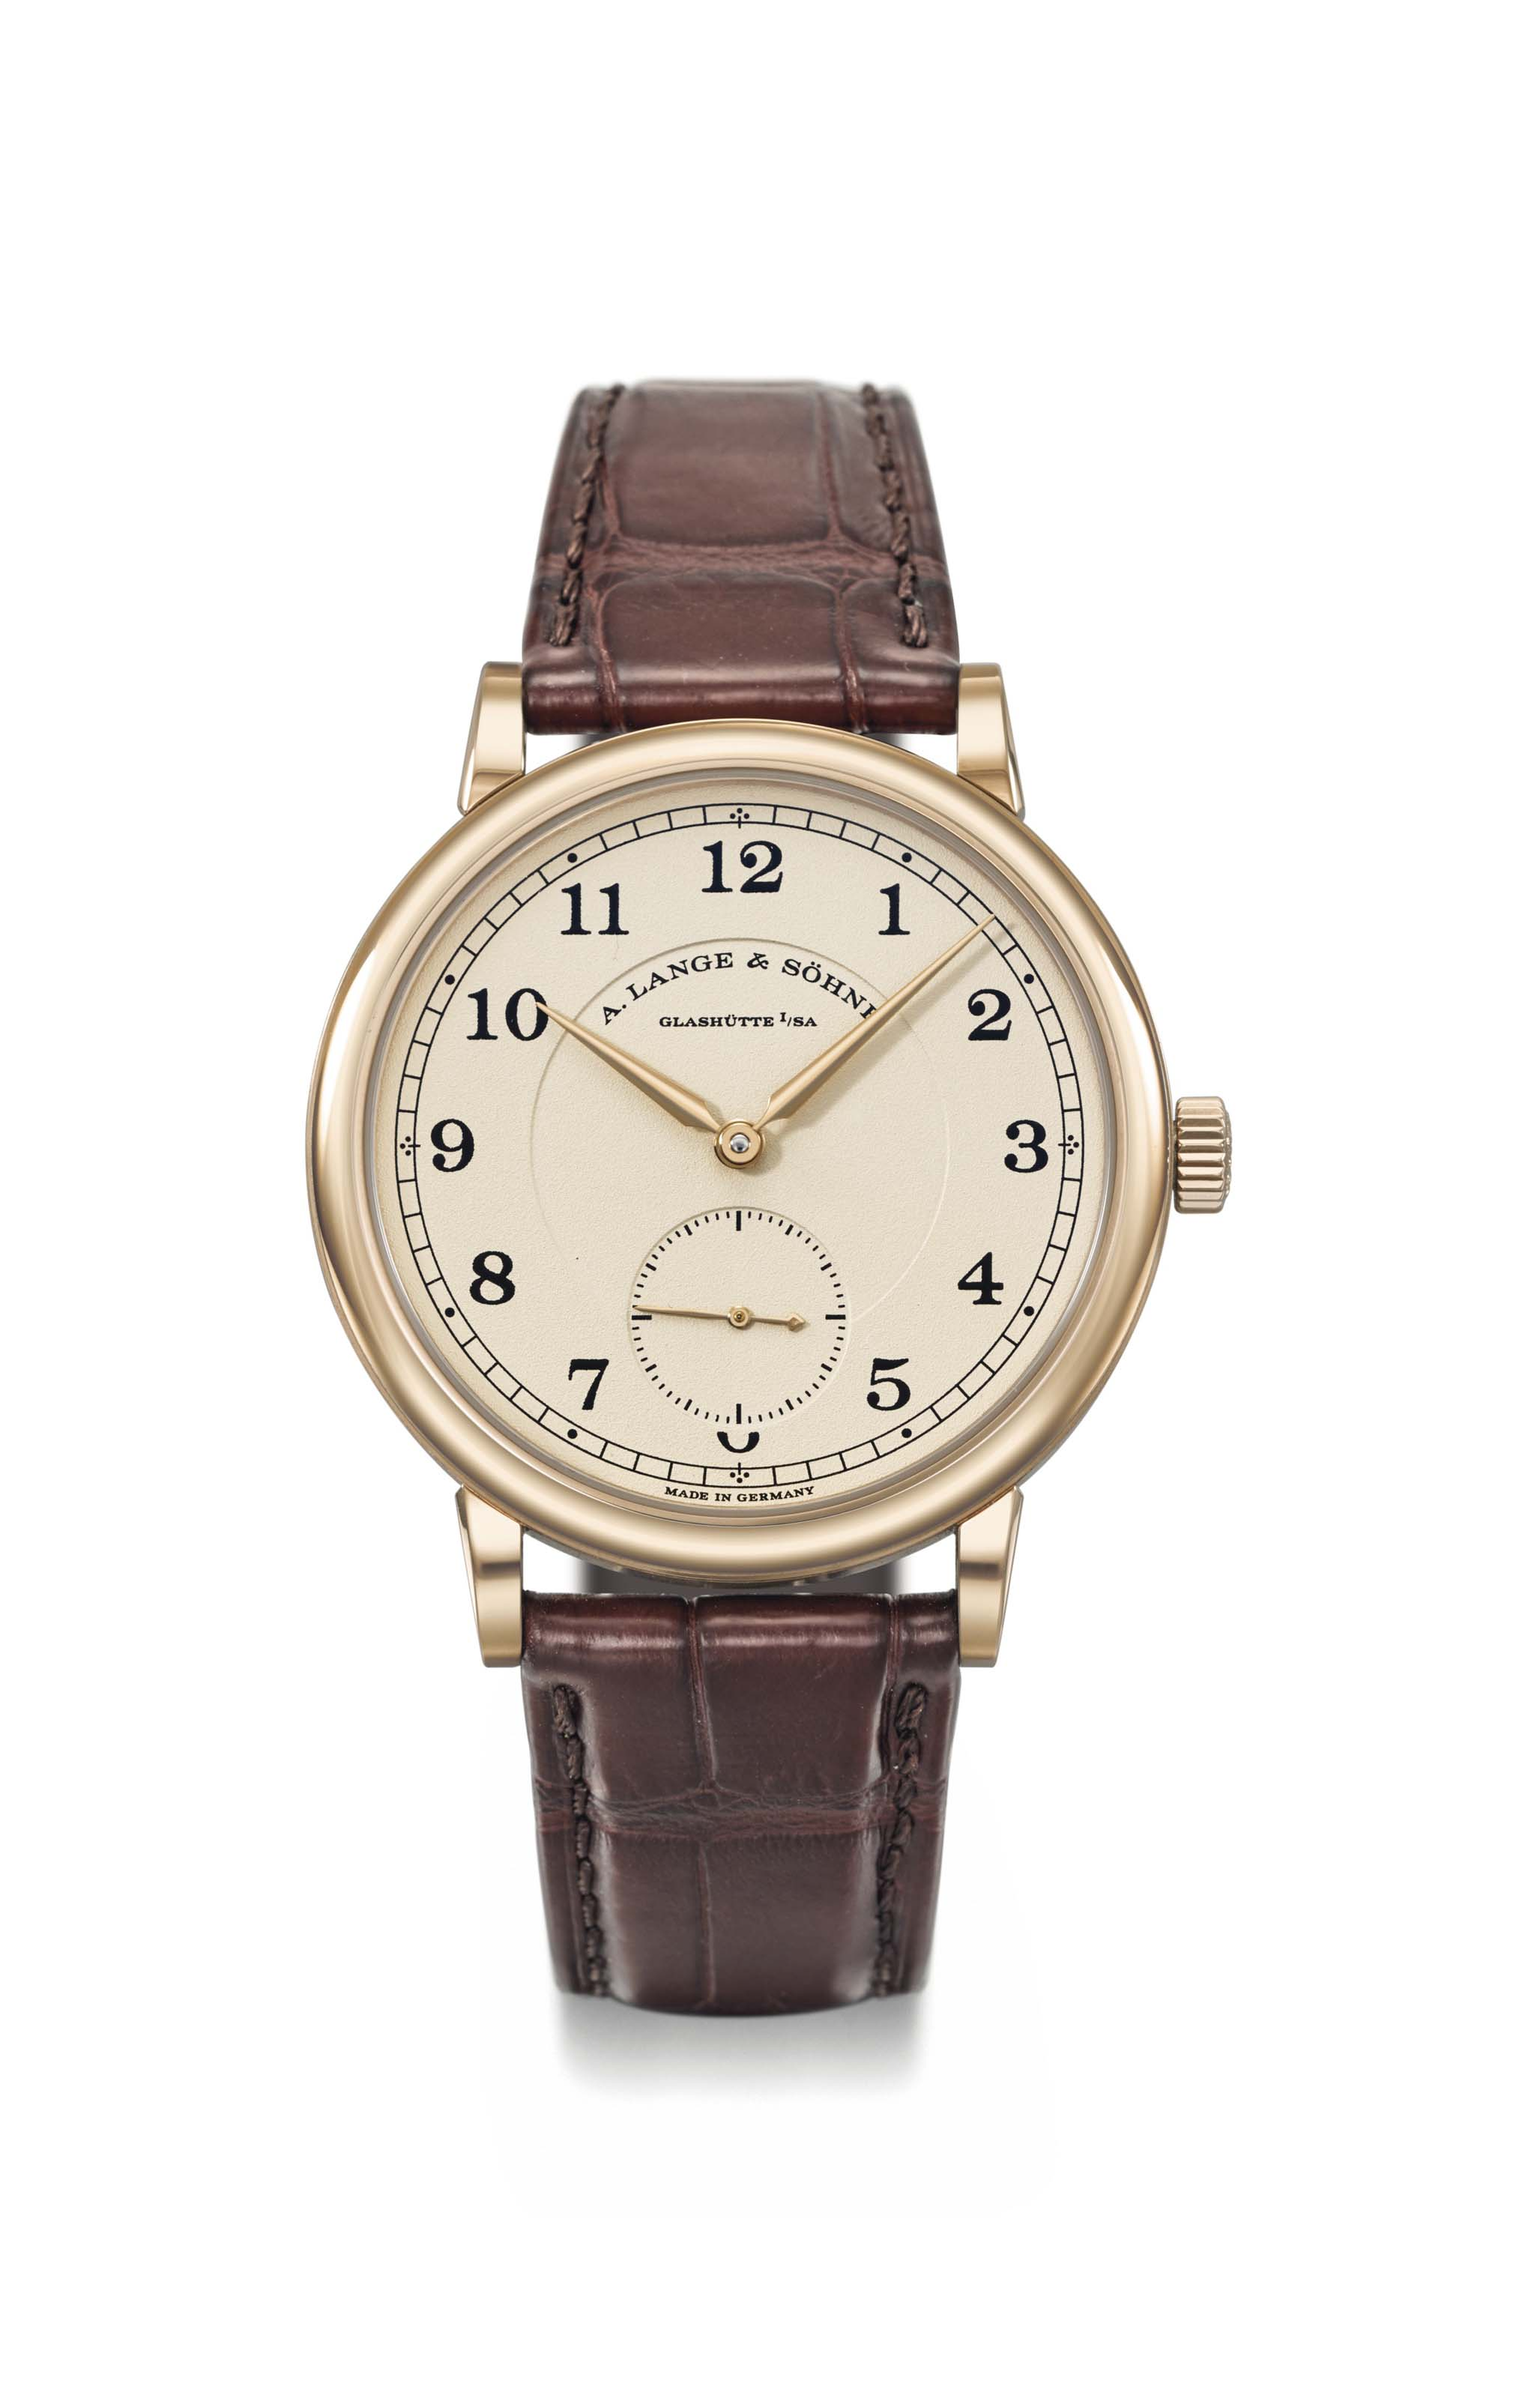 A. Lange & Söhne. A very fine 18K honey gold limited edition wristwatch, original box and certificate